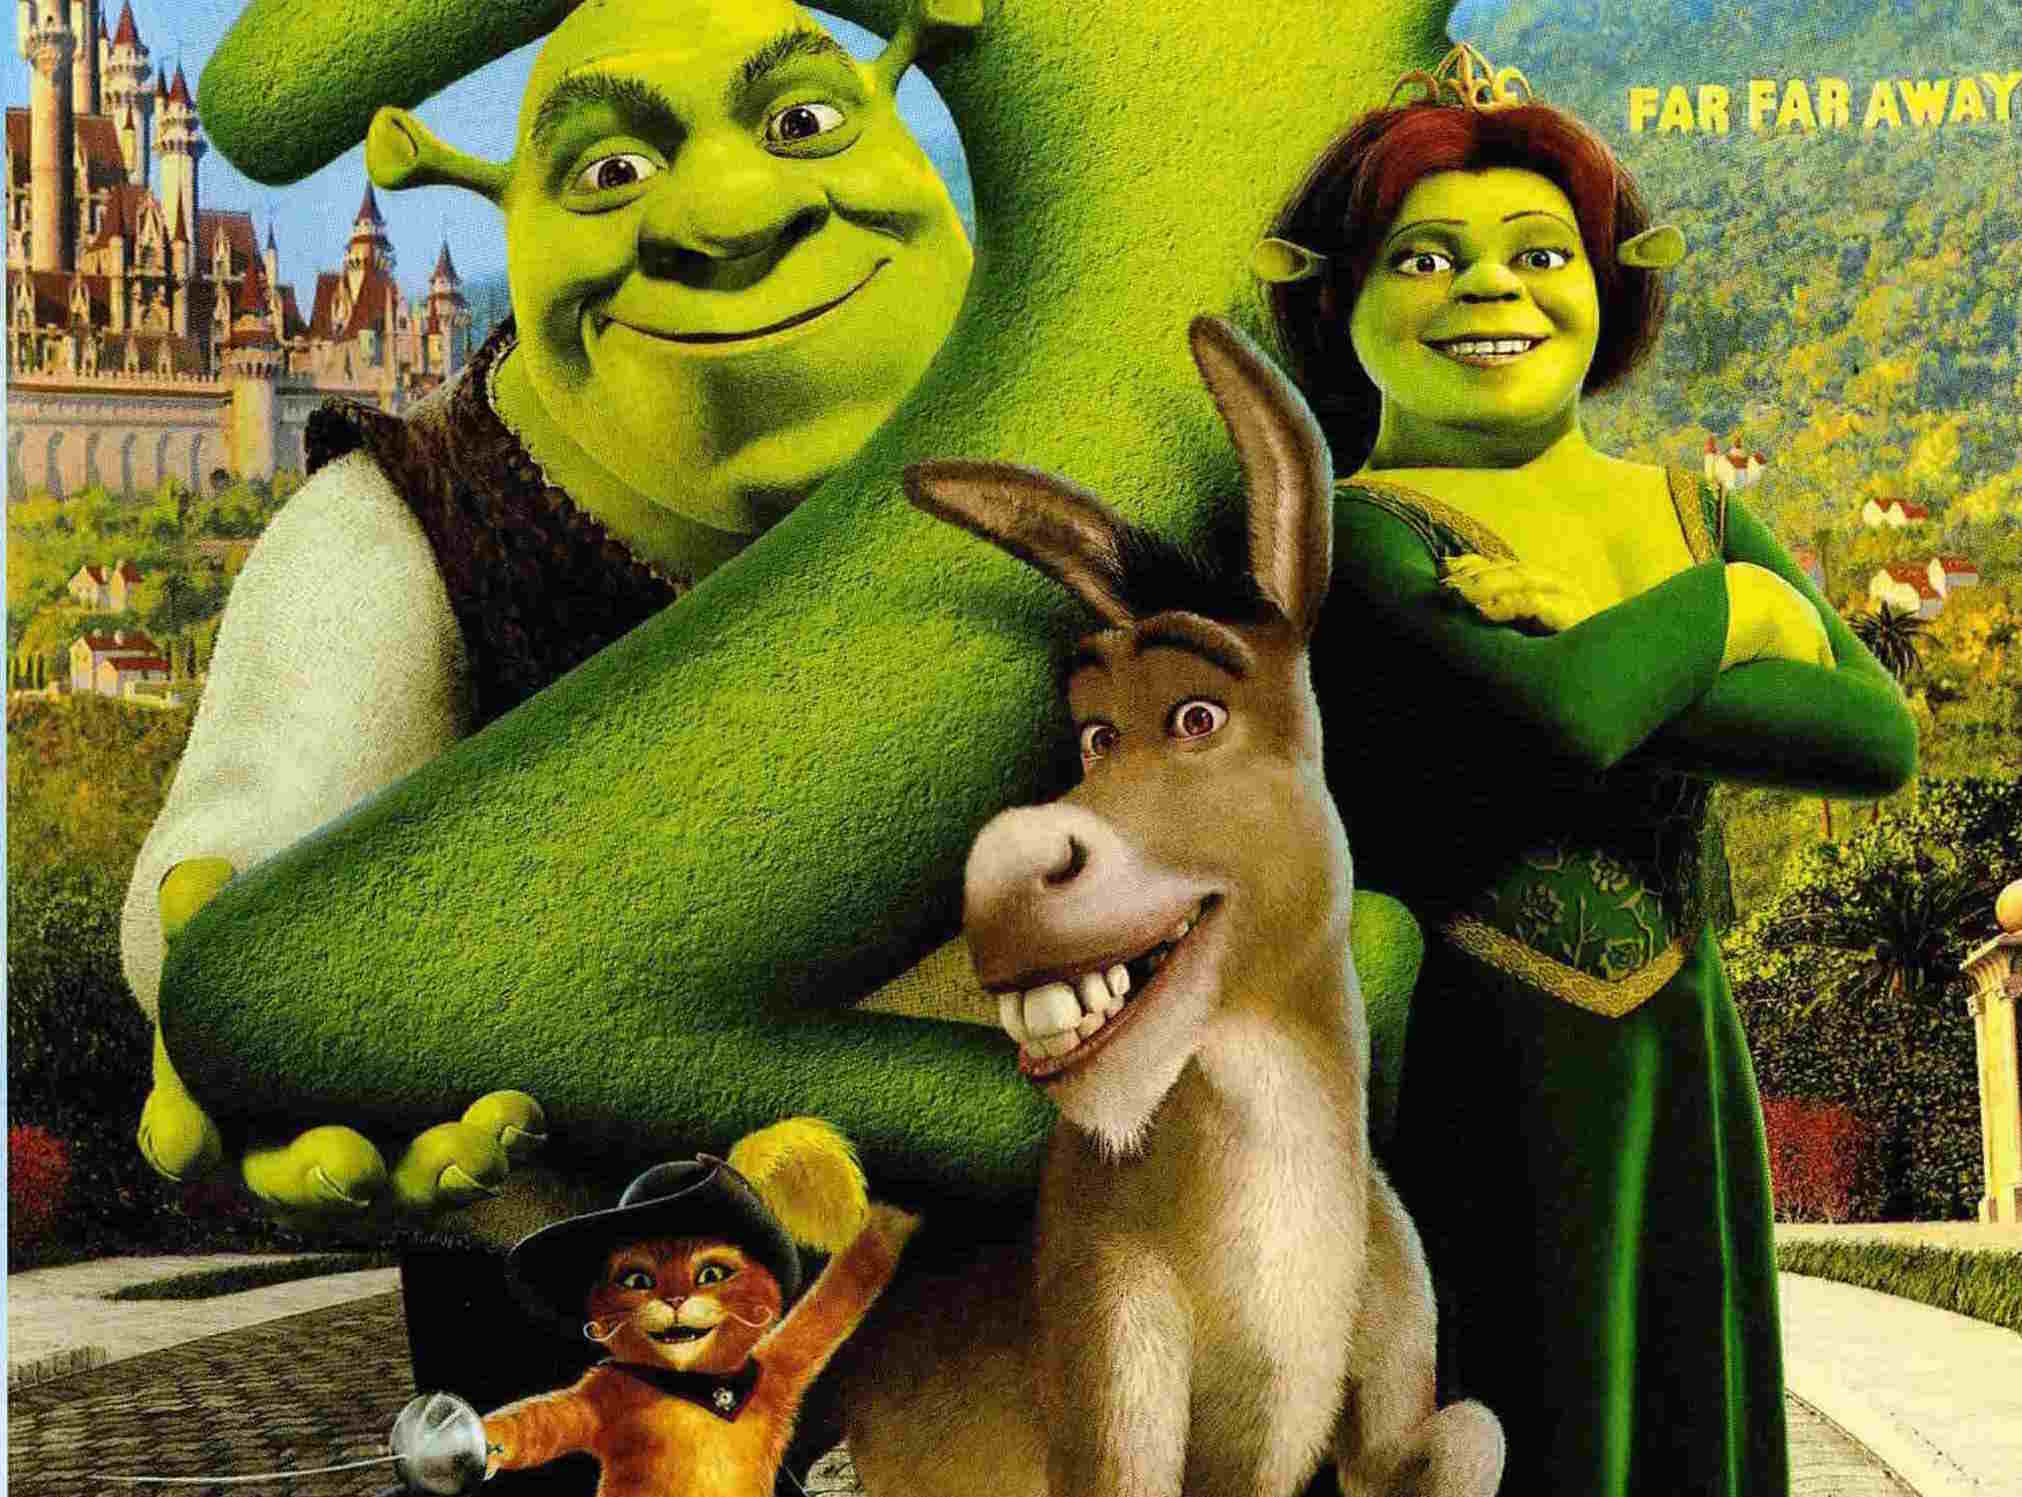 Shrek 2 (2004) Drinking Game